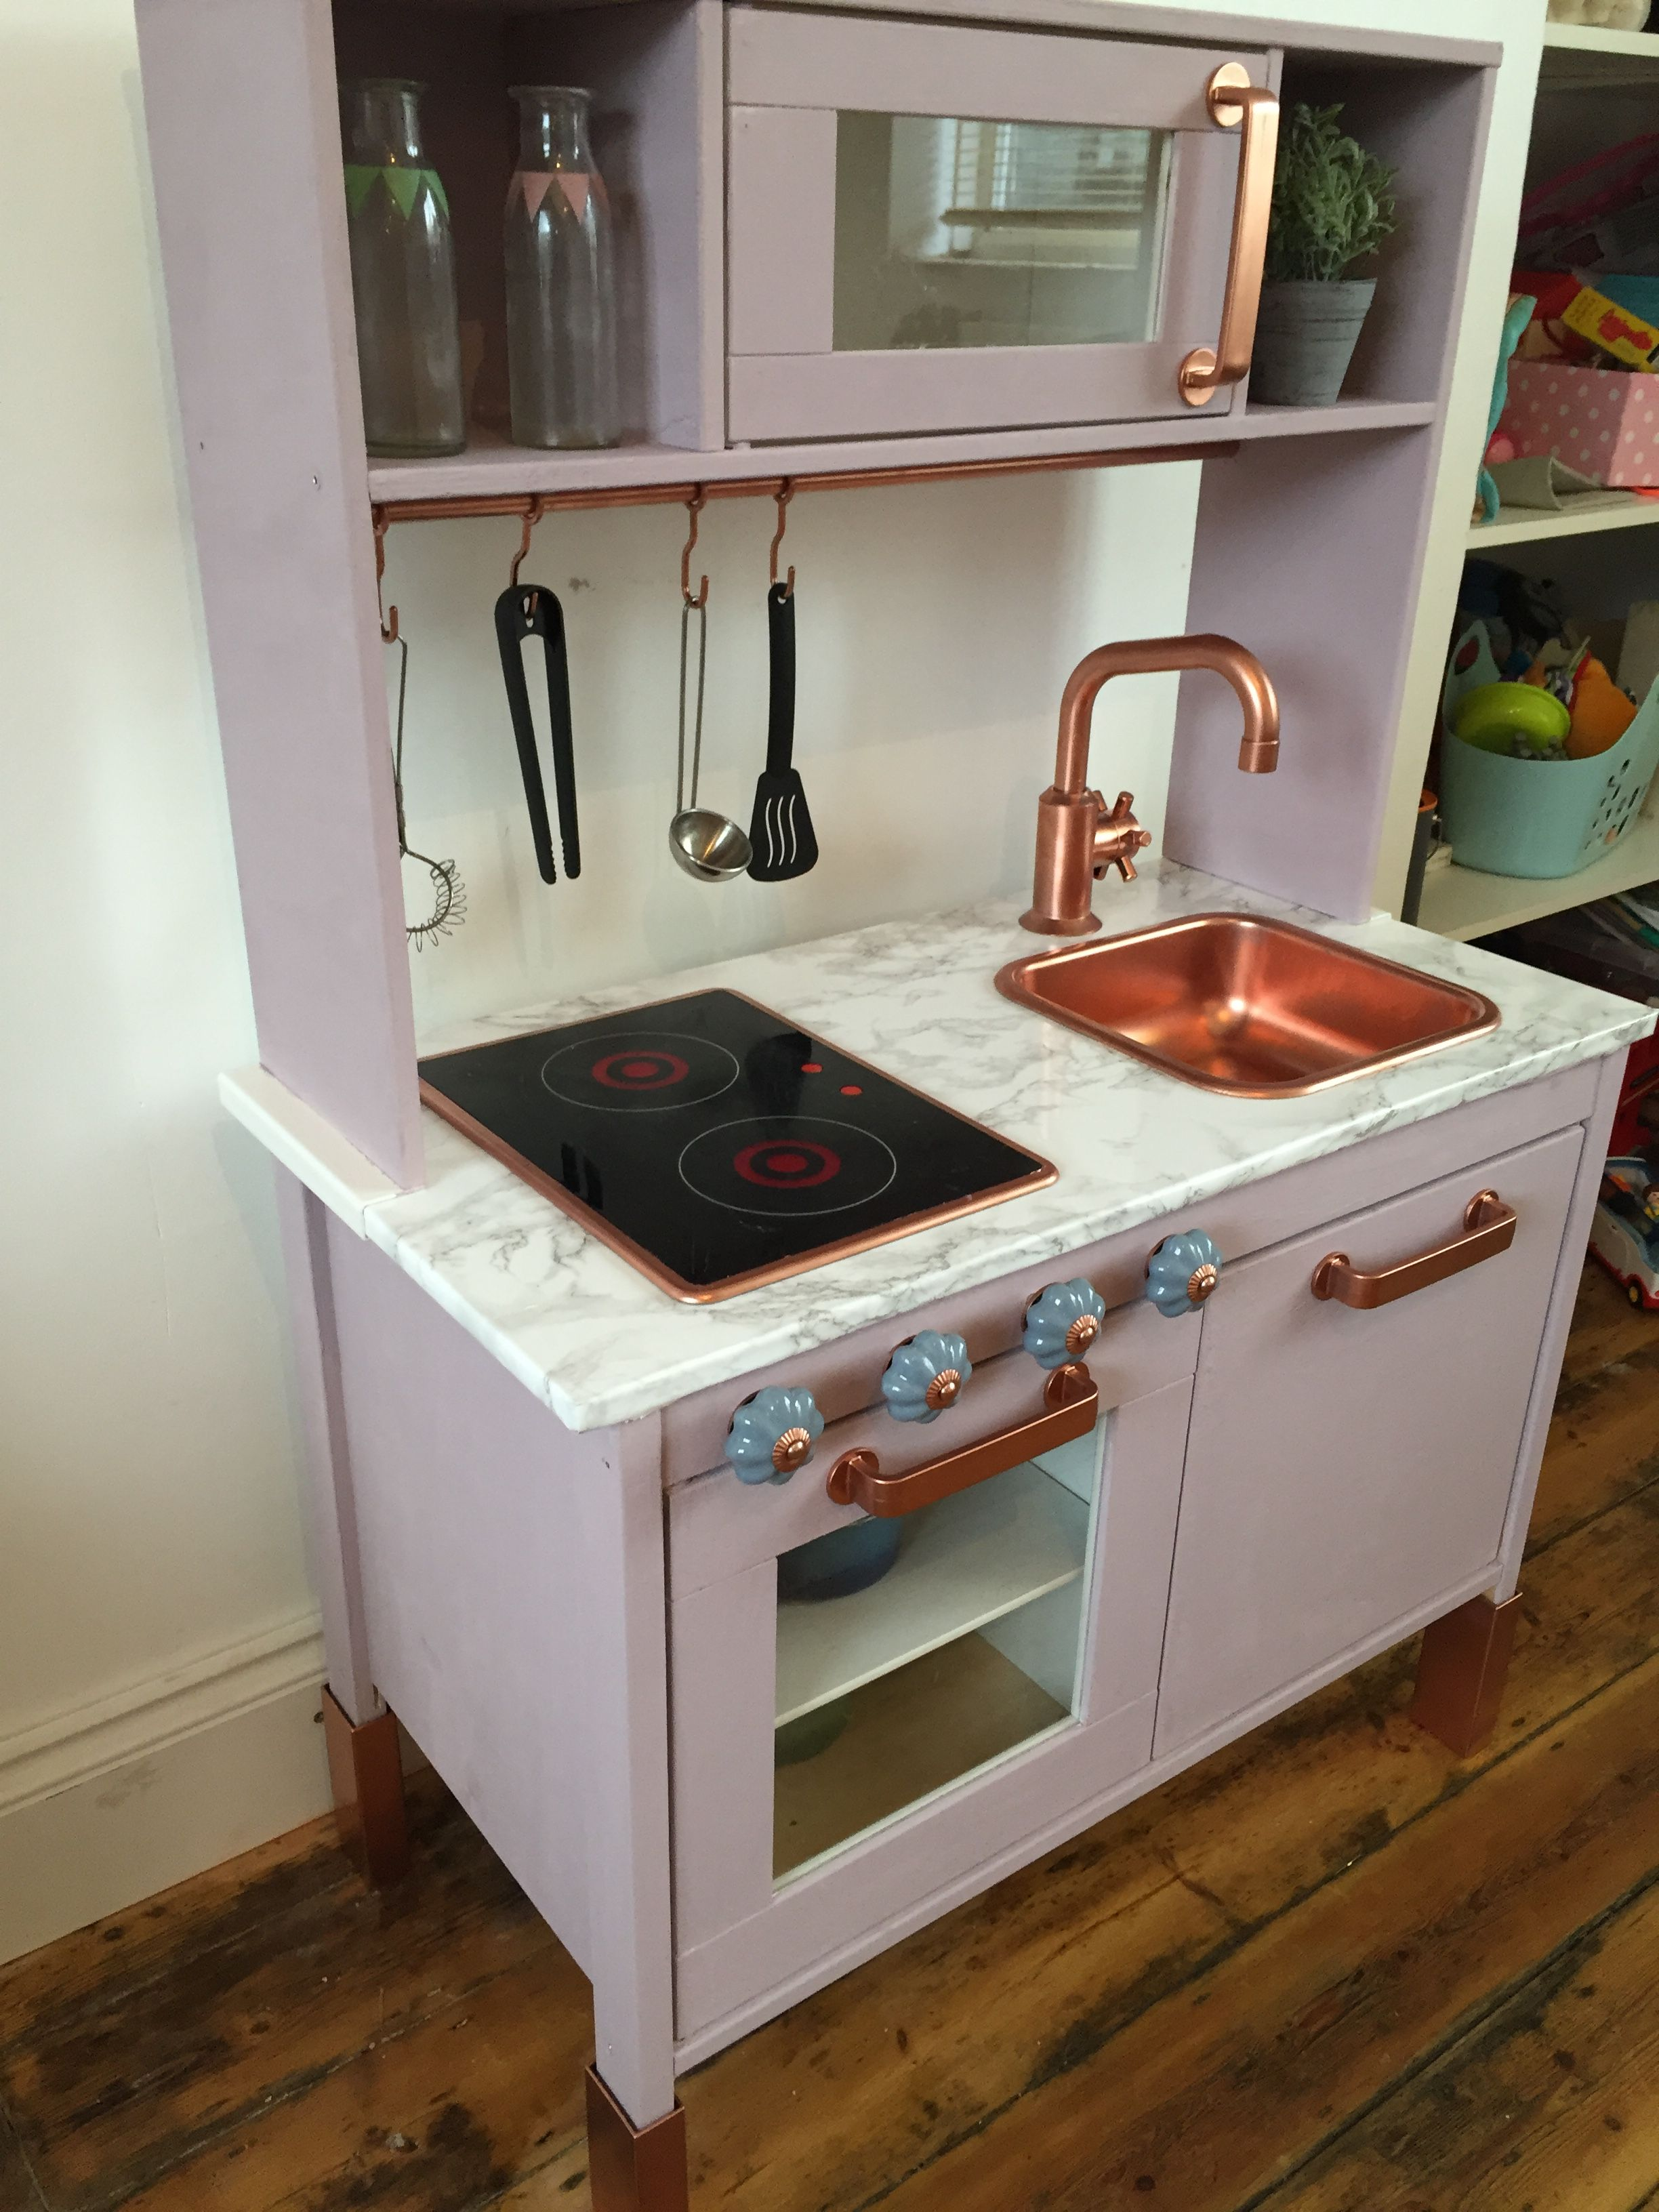 Duktig Küche Ikea Family Duktig Kitchen Purple Marble Copper Ikea Kitchen For Kids Army